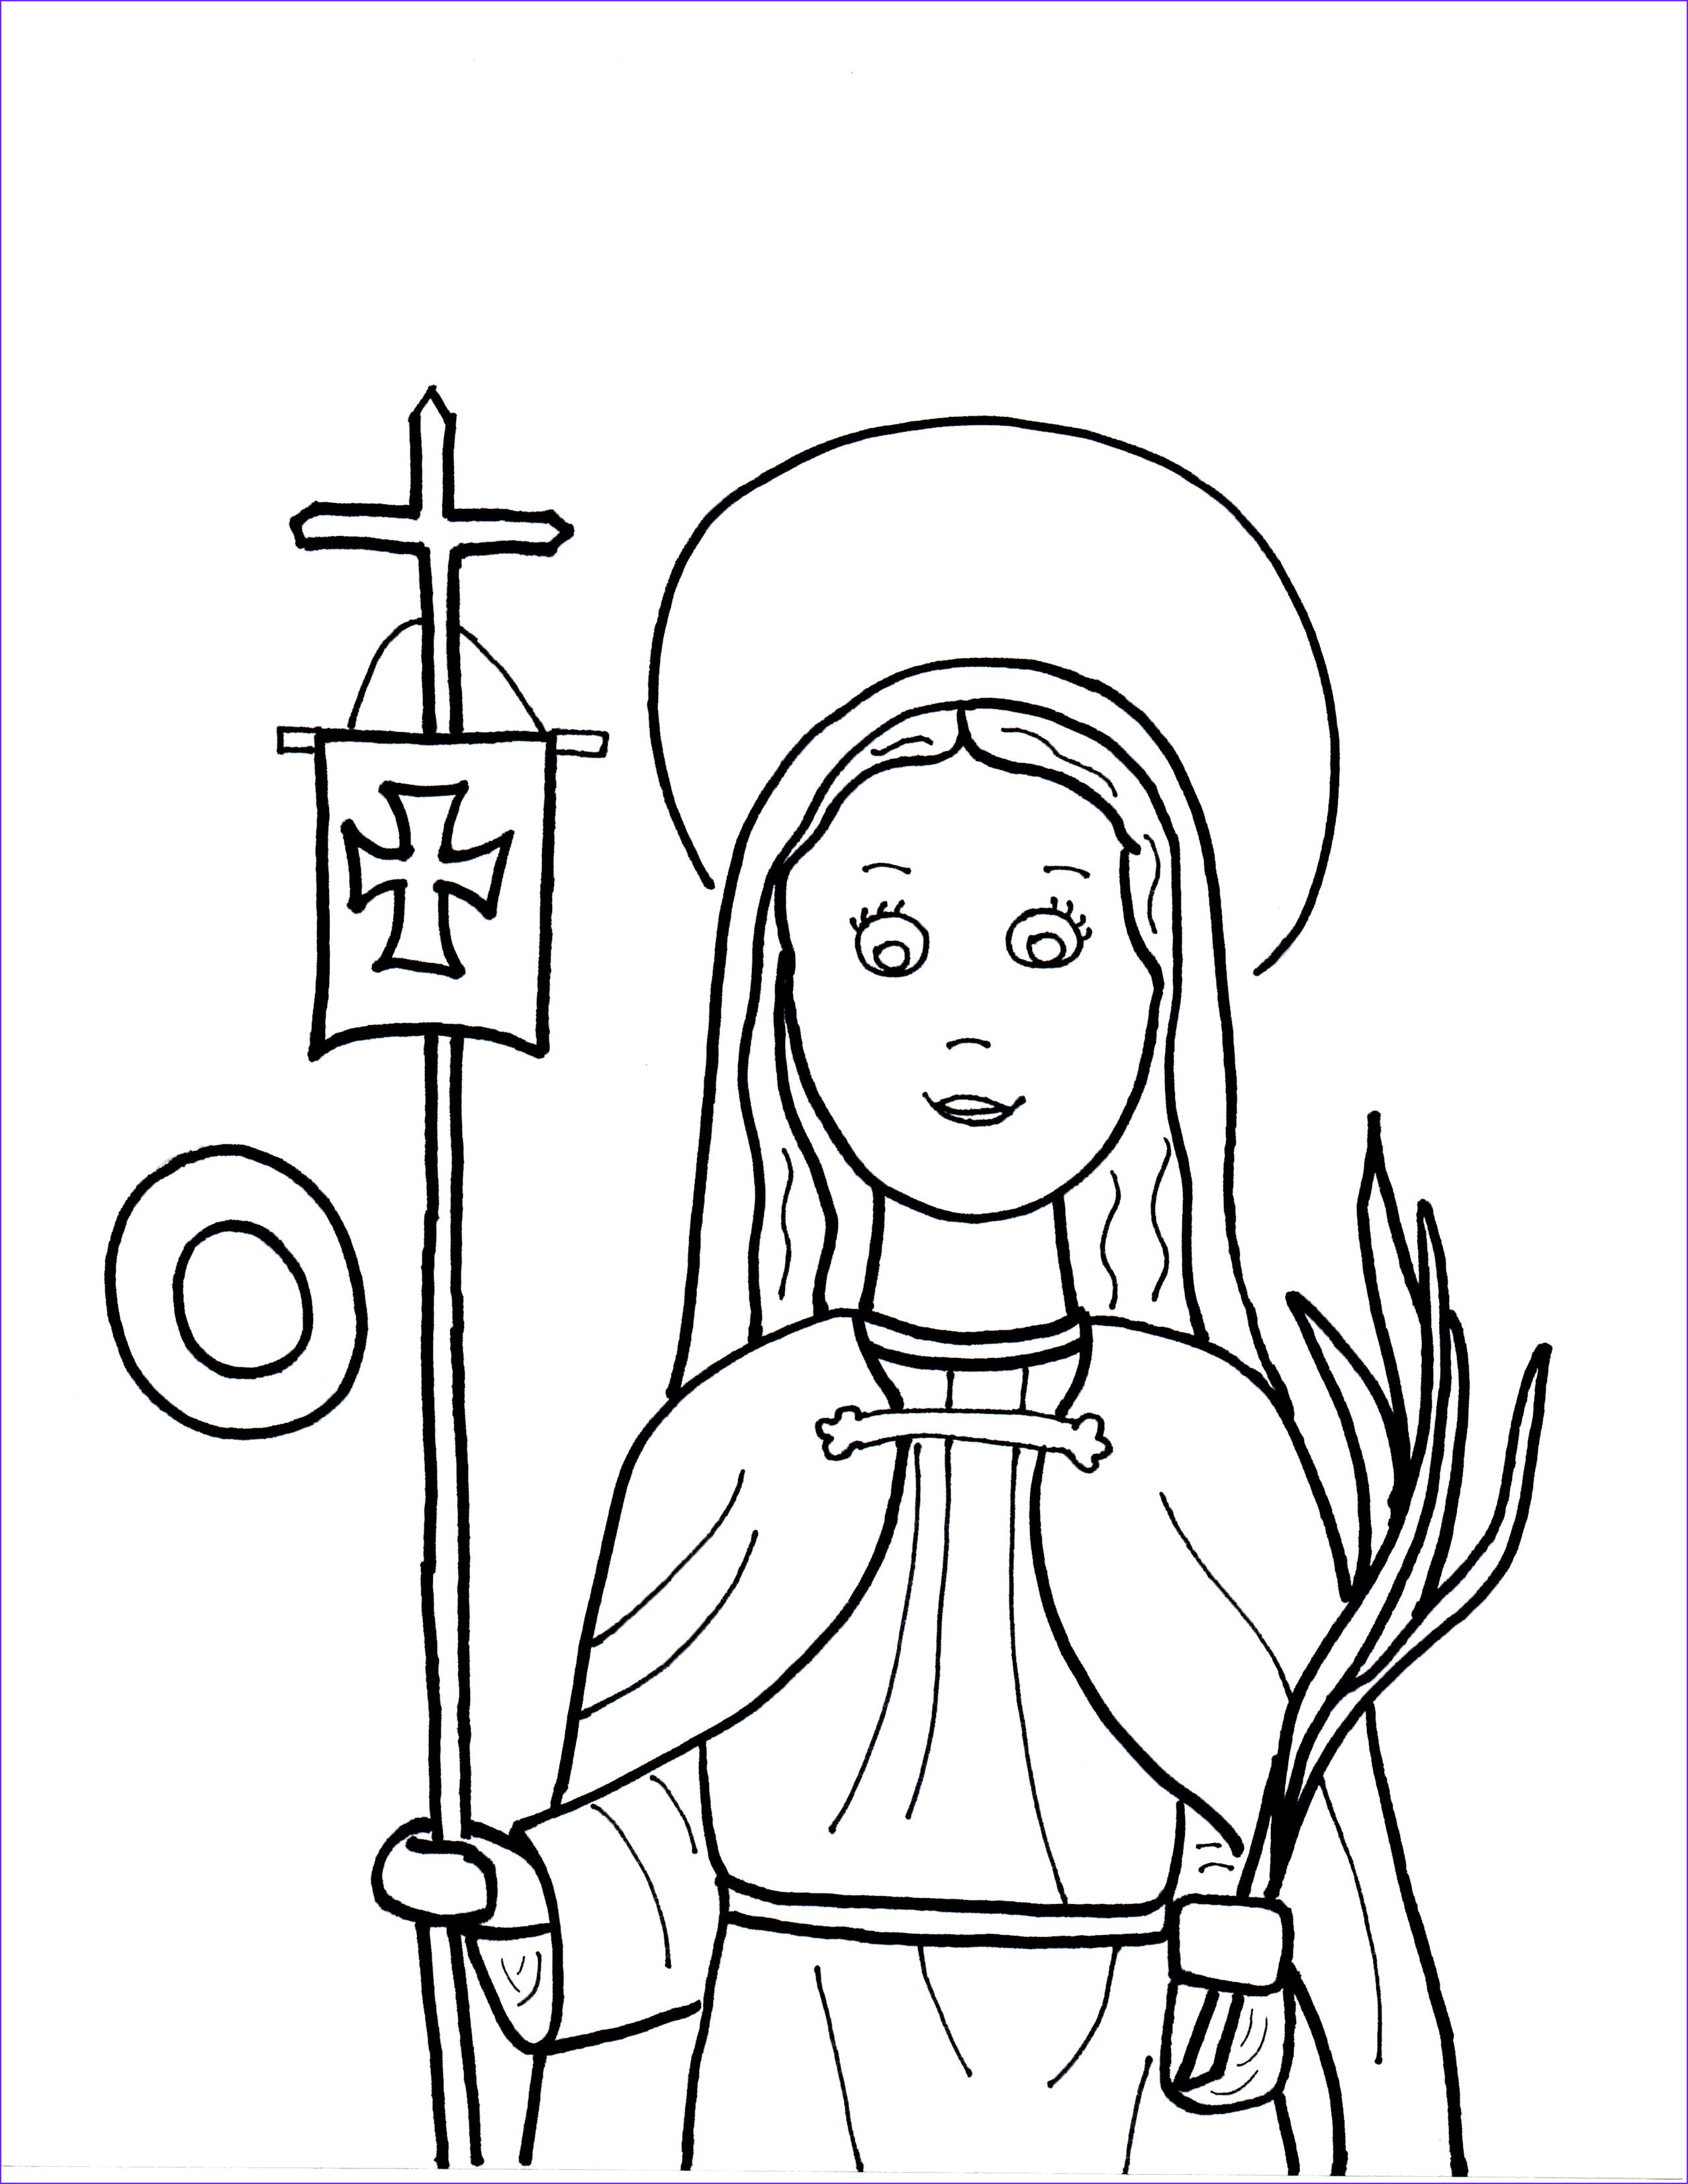 O is for St Odilia